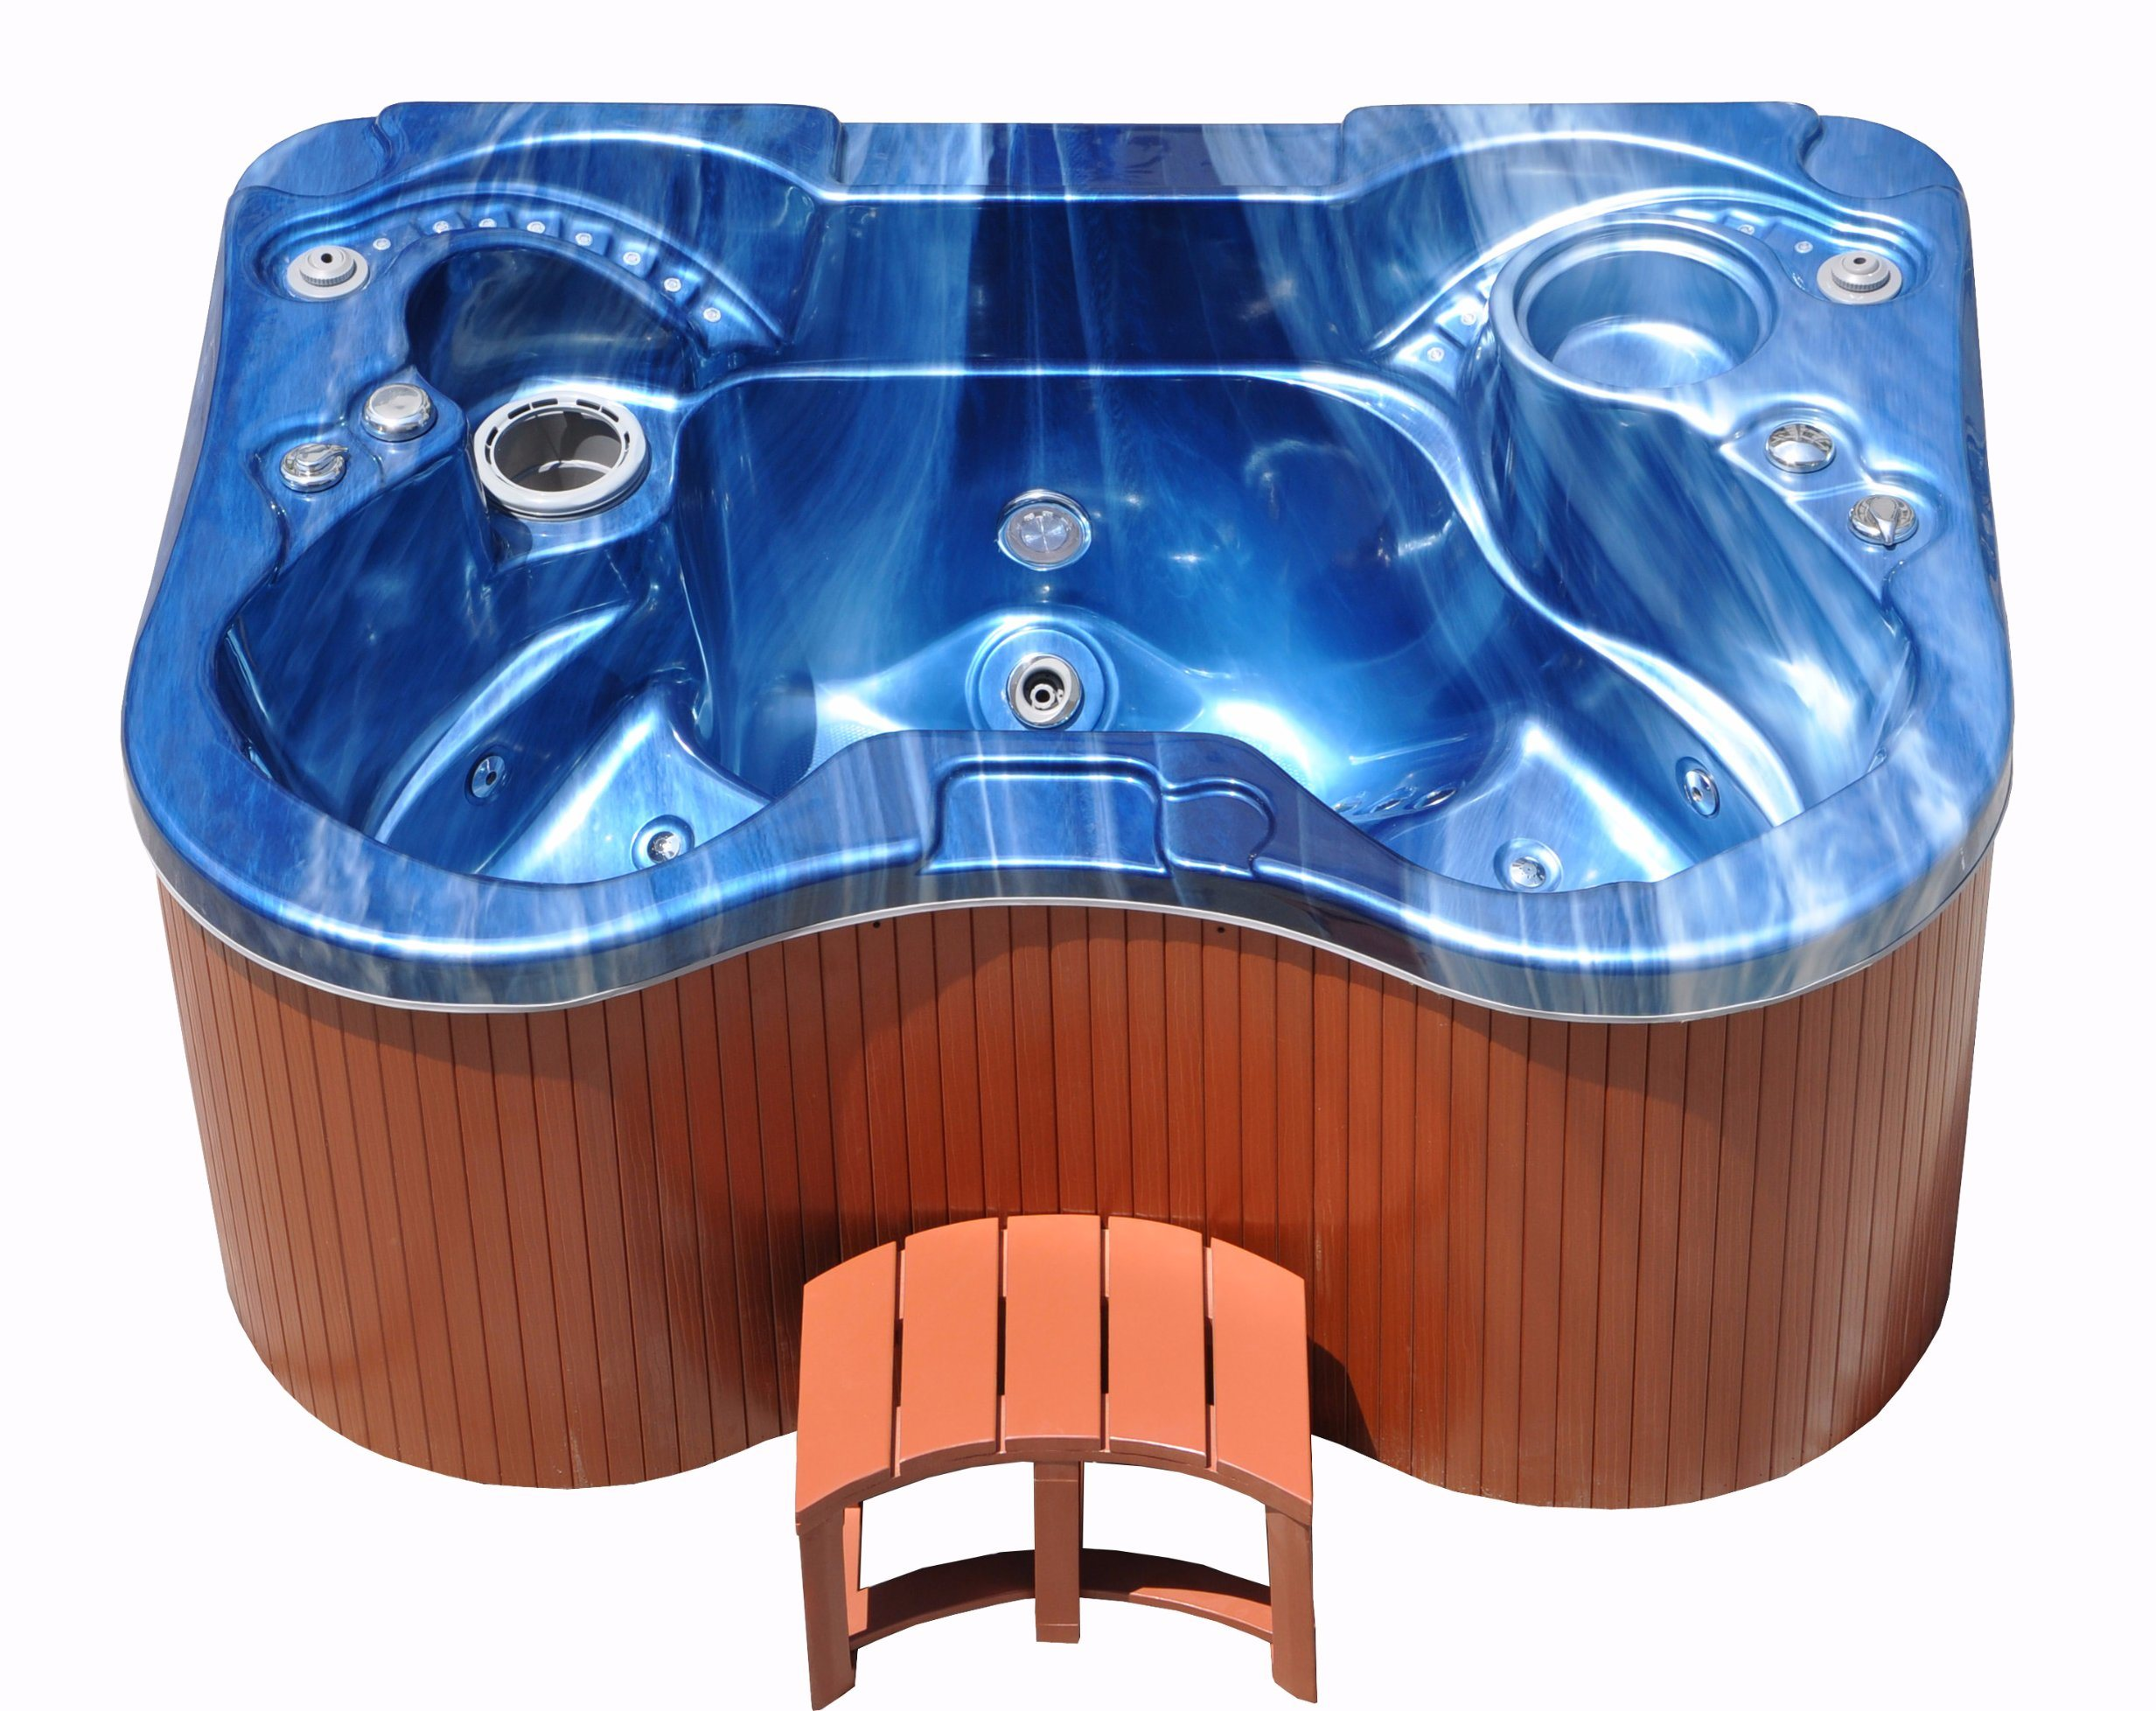 Outdoor Whirlpool Cheap Hot Item Custom 3 Person High Quality Cheap Mini Blue Color Whirlpool Spa Hot Tub Spa For The Home Kgt Jcs 23